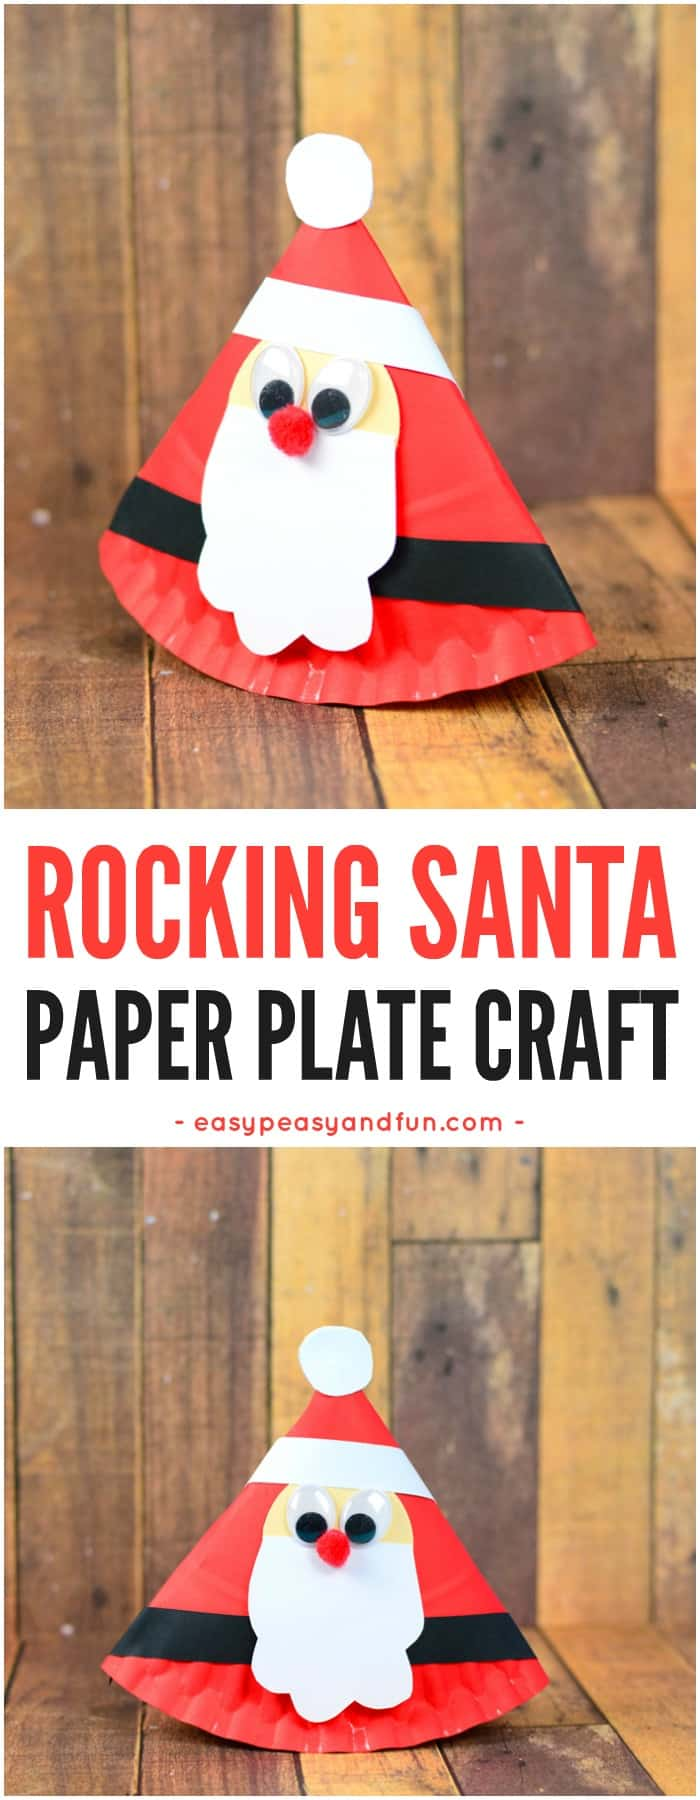 Cute Rocking Paper Plate Santa Craft for Kids. A Super Fun Christmas Craft Idea for Kids to Make. #Christmascraftsforkids #Paperplatecraftsforkids #Santacraftsforkids